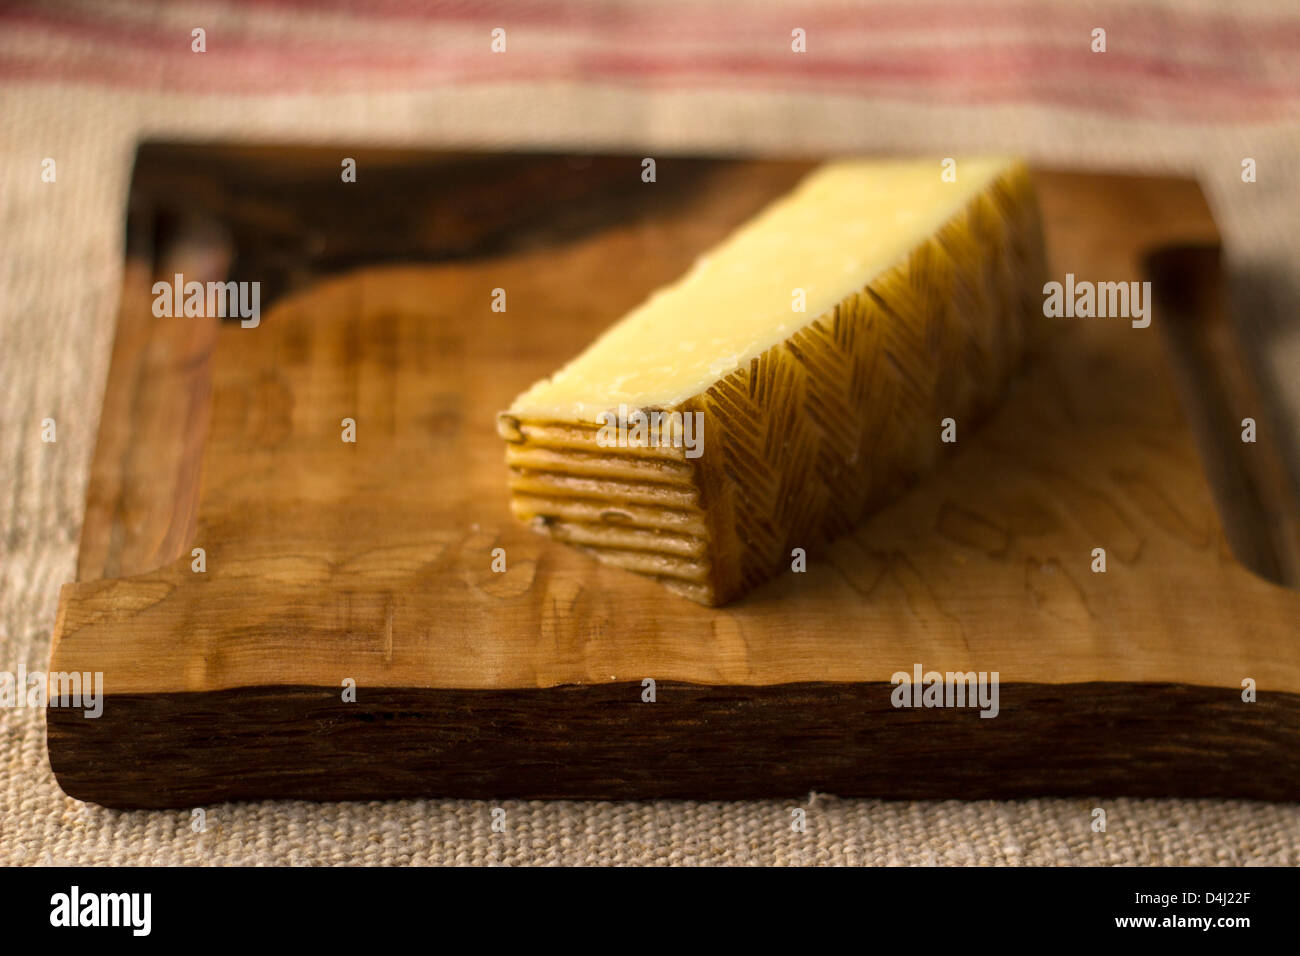 Selection board of cheese on a wooden board - Stock Image